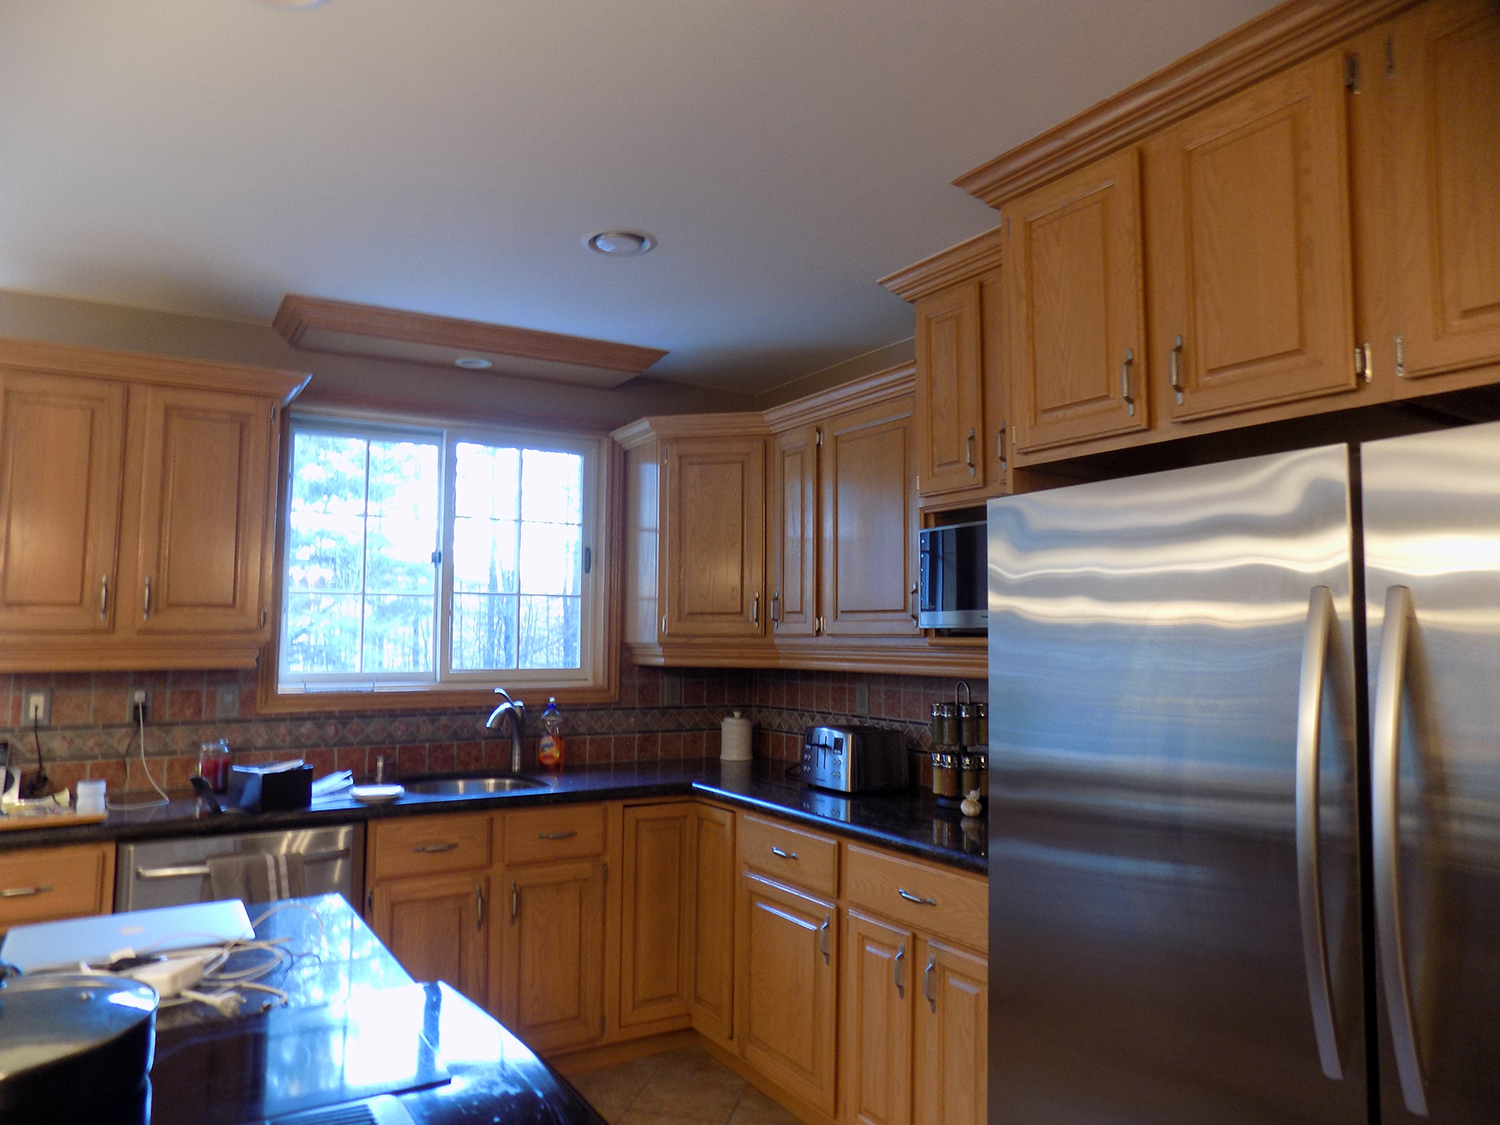 Room transformations freshlookpaintingservices for Kitchen cabinets barrie